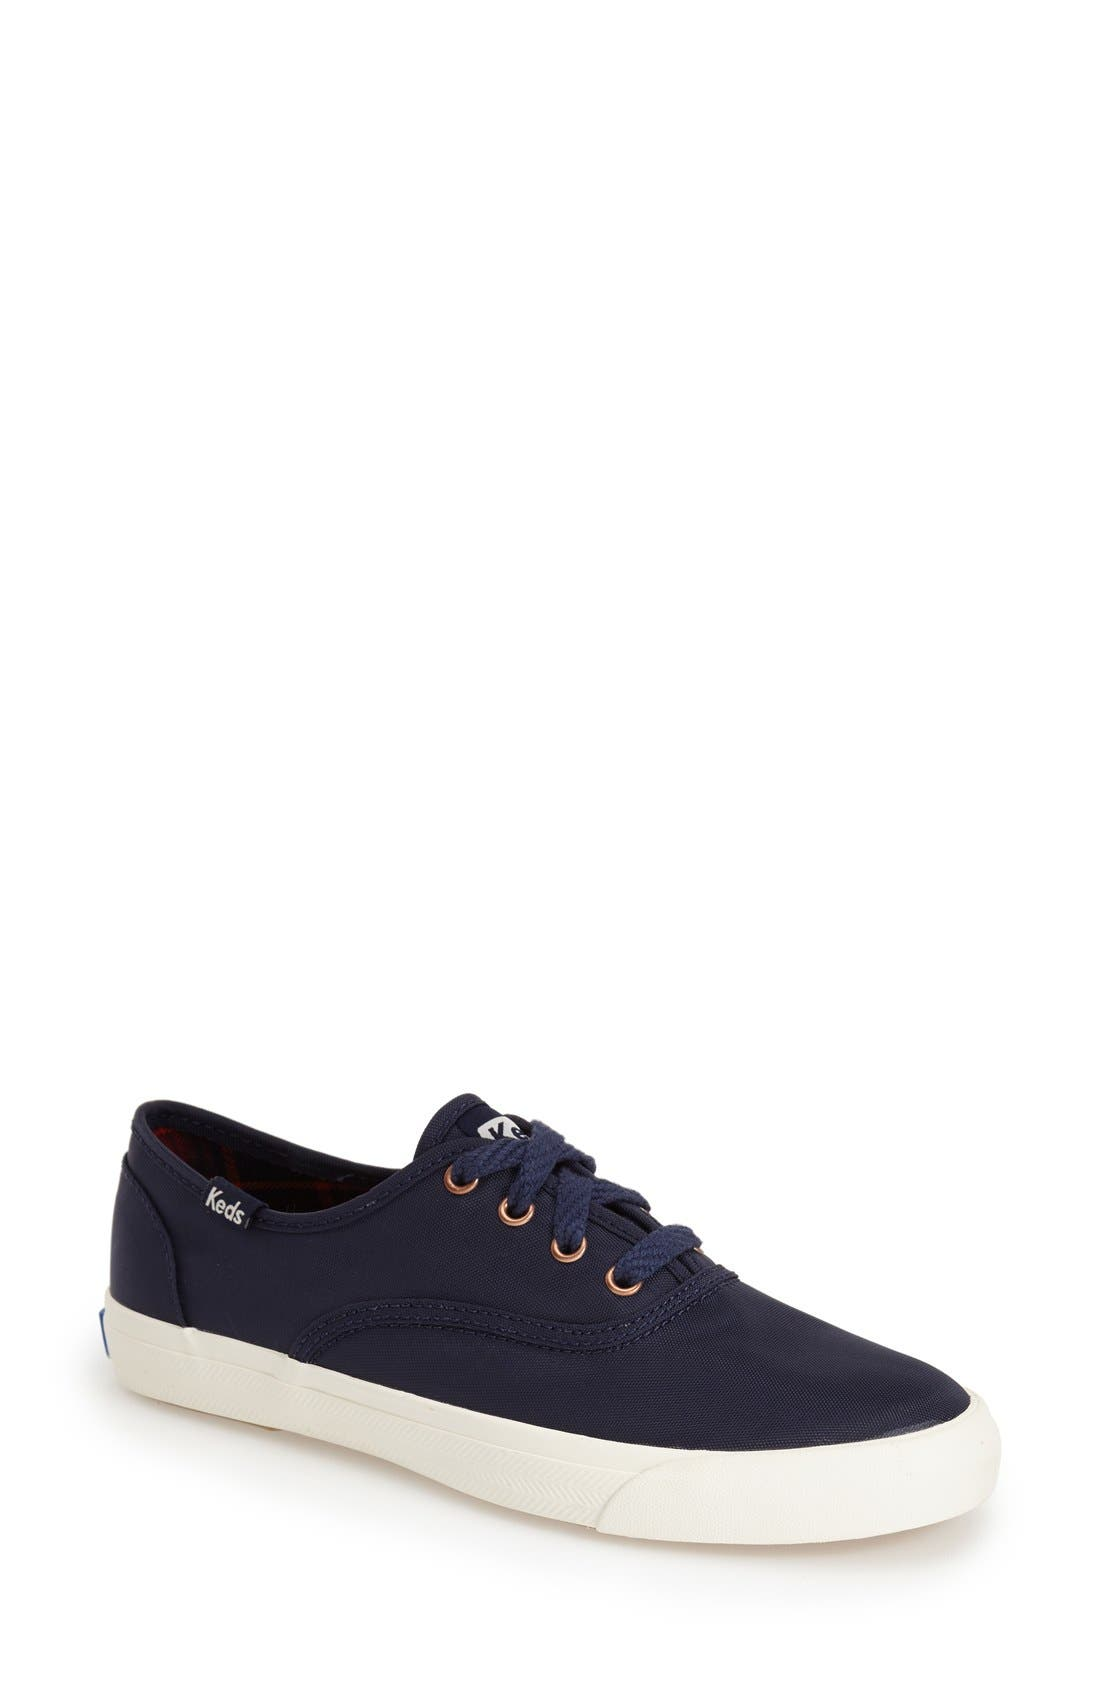 Alternate Image 1 Selected - Keds® 'Triumph' Sneaker (Women)